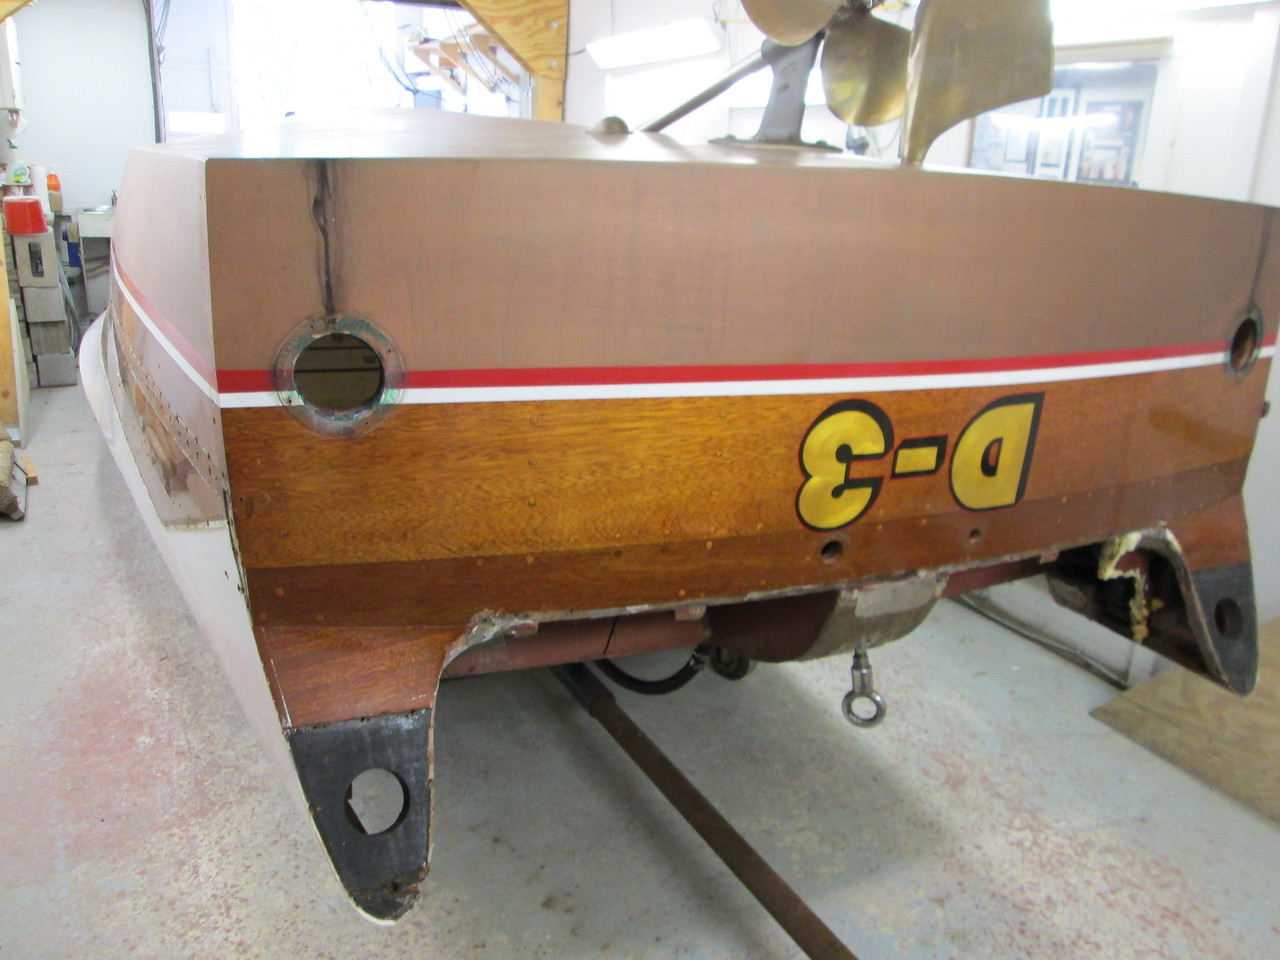 Transom view of the hull upside down.